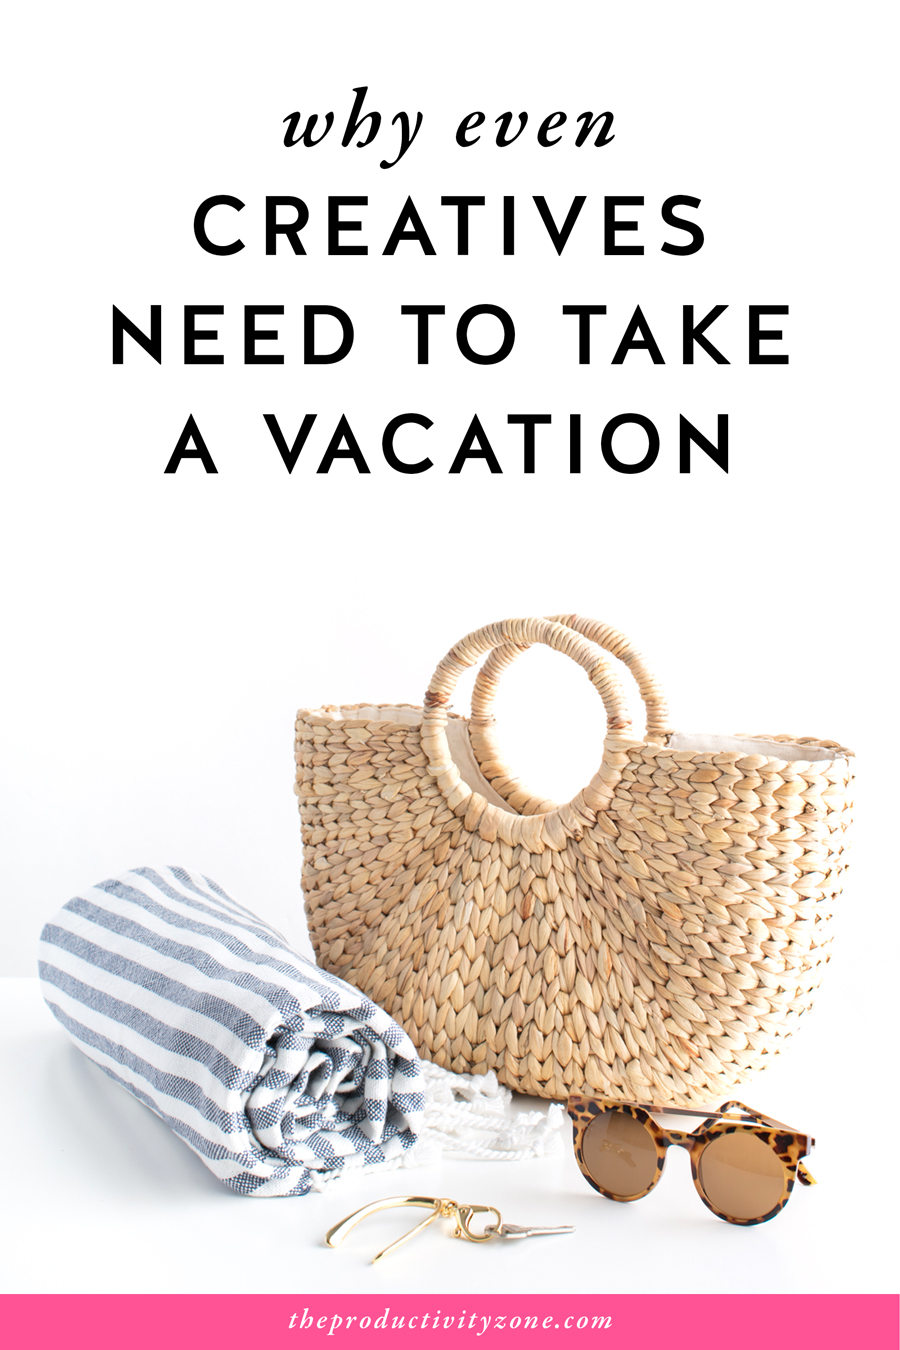 Yes, it's true. Even creatives need to take a vacation. Why? Because all work and no play makes for a burnt out business owner!! Check out all the reasons why taking a vacation is not just a NEED TO but a MUST DO for creative female entrepreneurs on The Productivity Zone!!